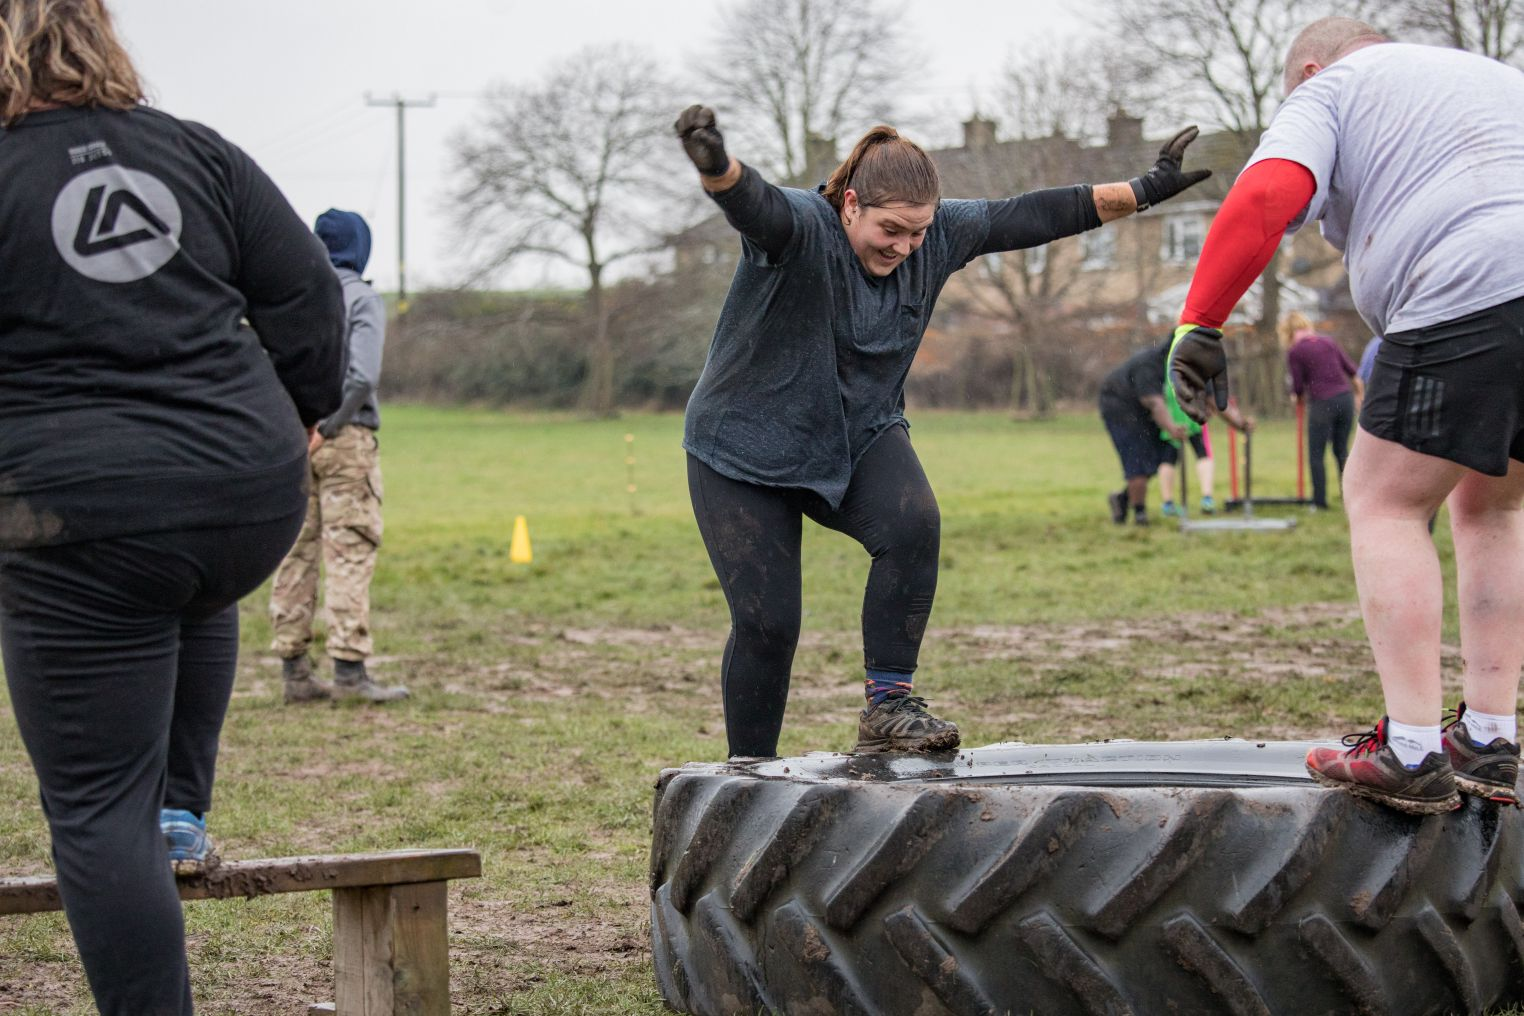 tyre-step-ups-boot-camp